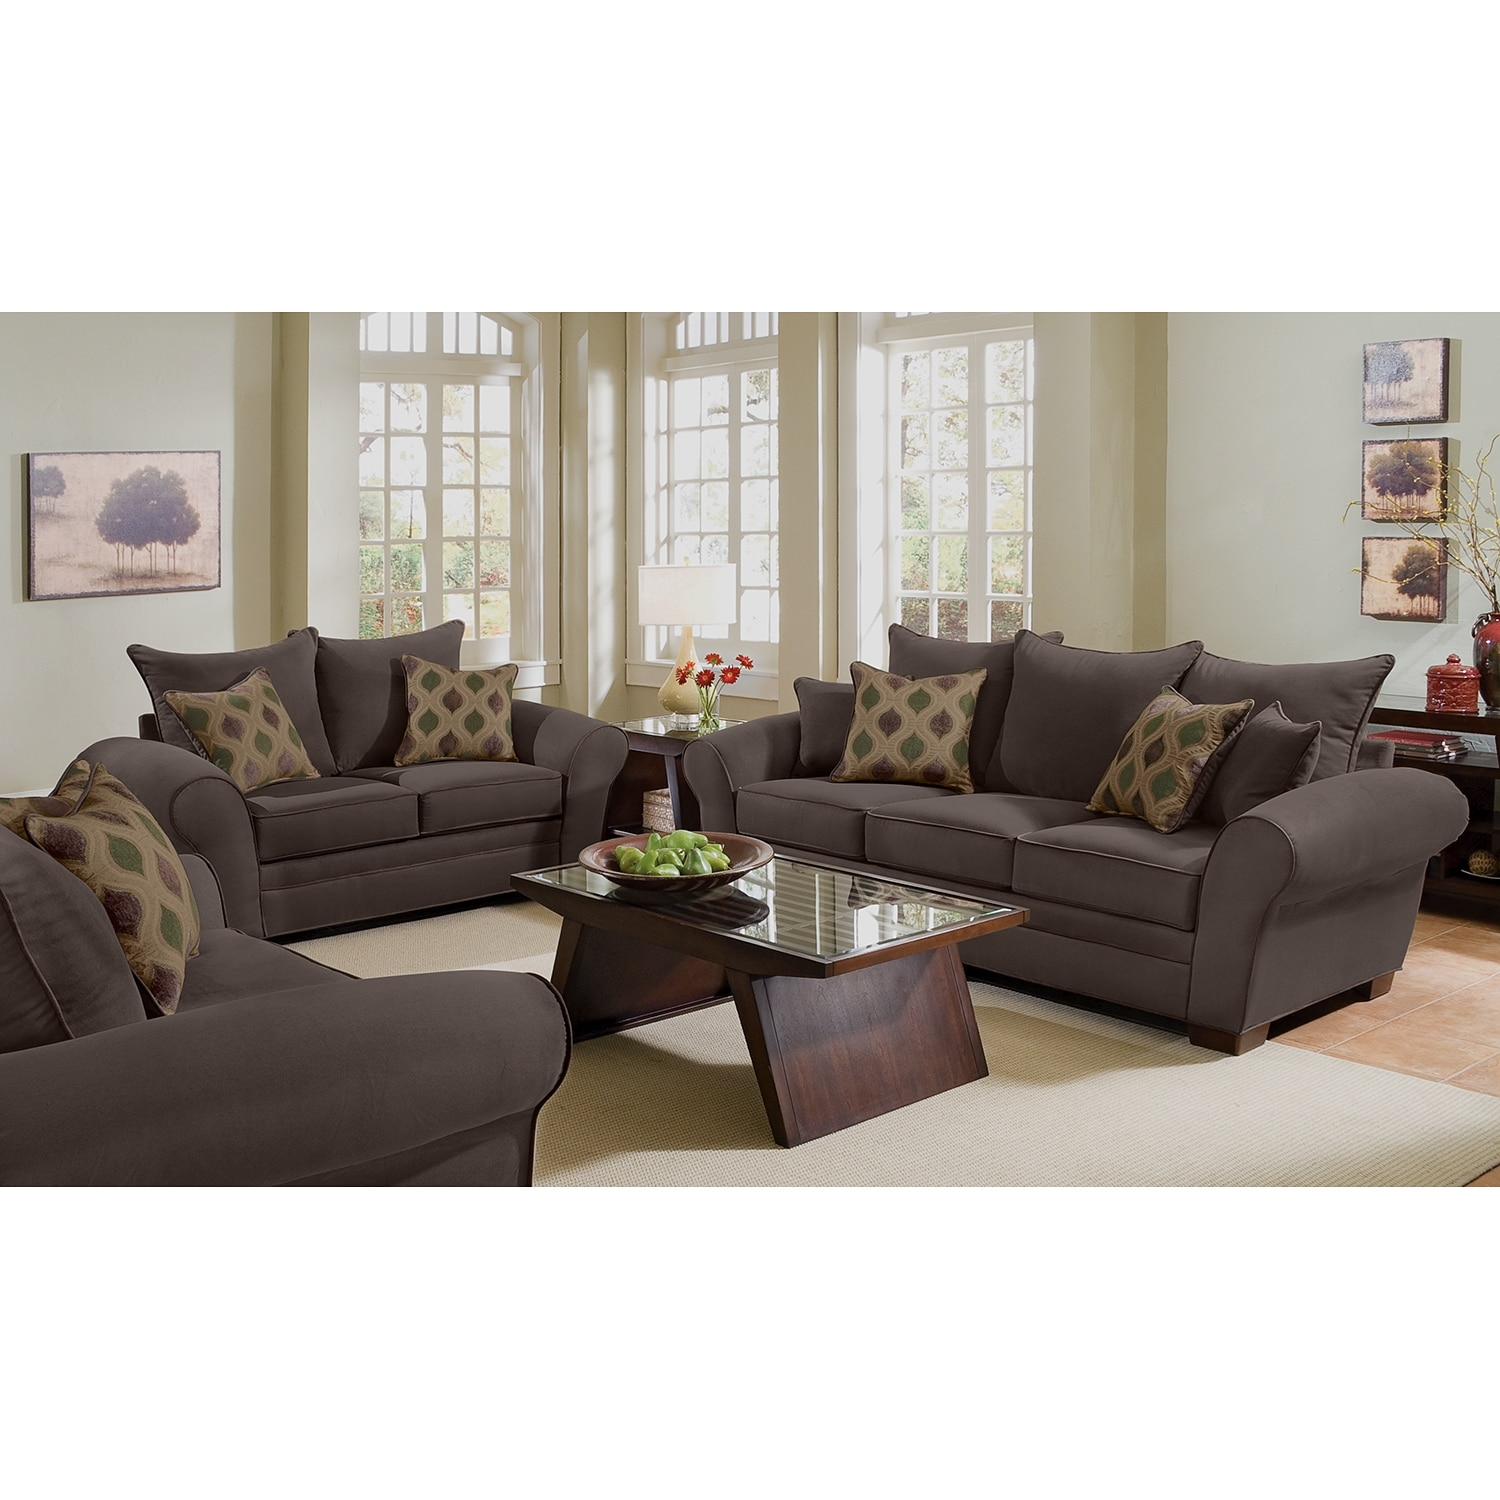 Living Room Furniture Sales: Value City Furniture